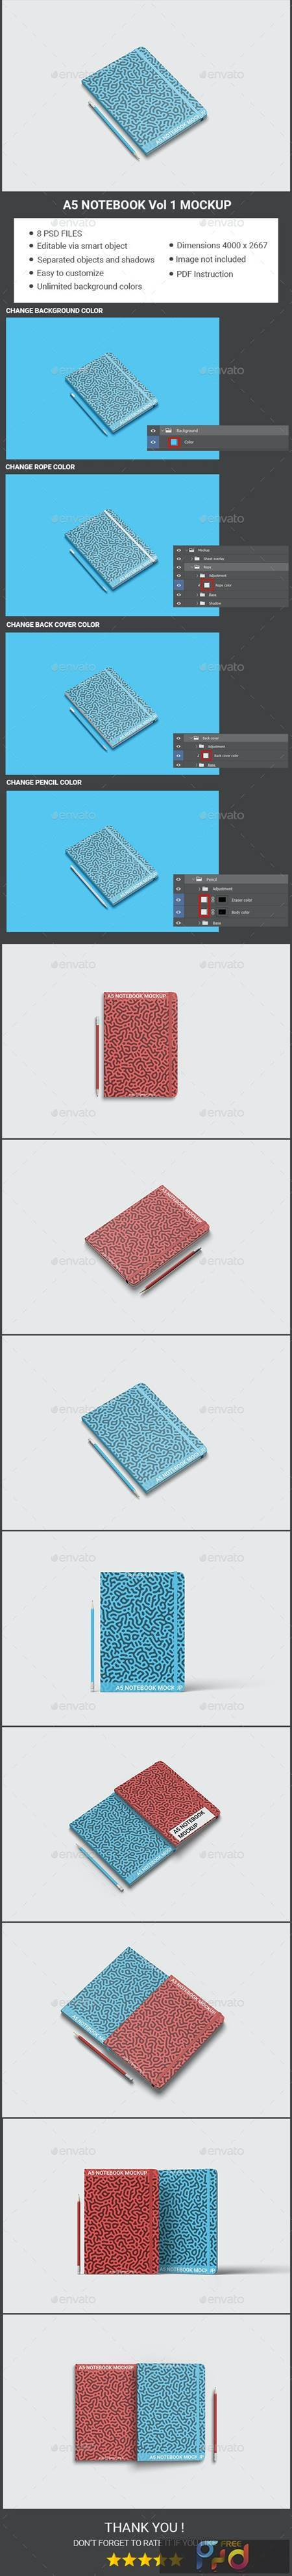 A5 Notebook Mockup Vol 1 - 29428396 1